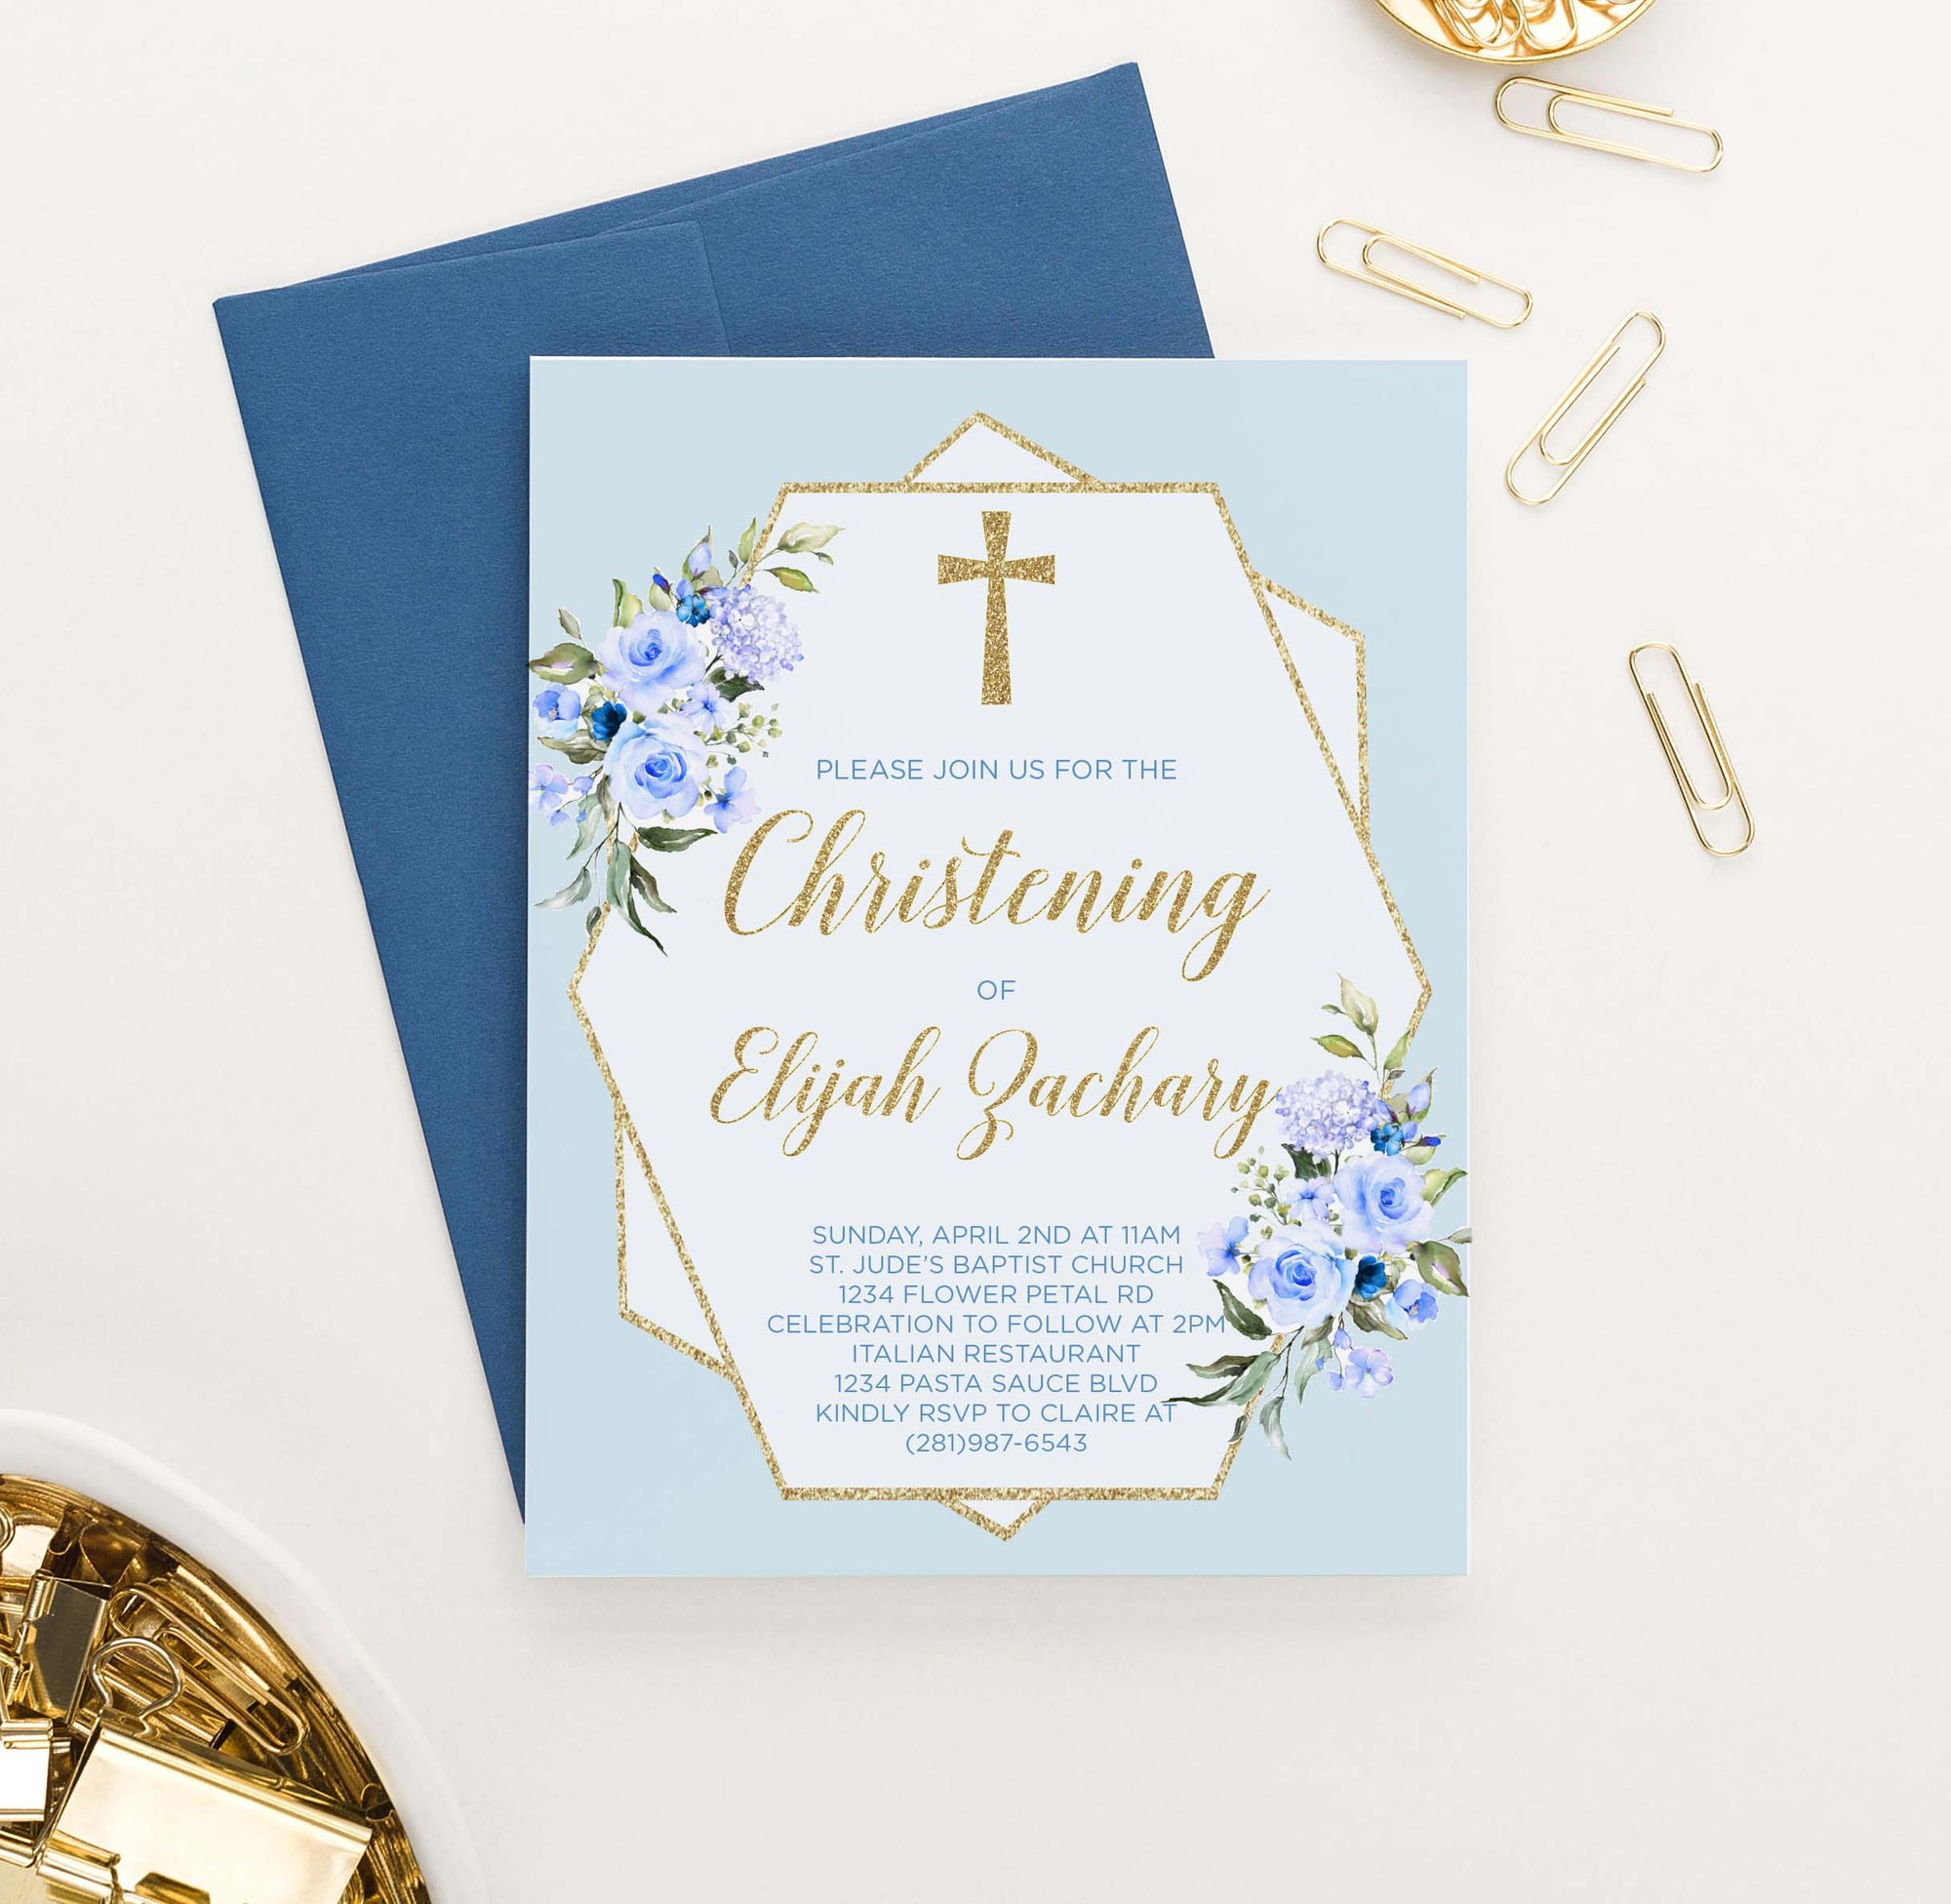 CI018 blueand gold christening invites for boys florals flowers glitter